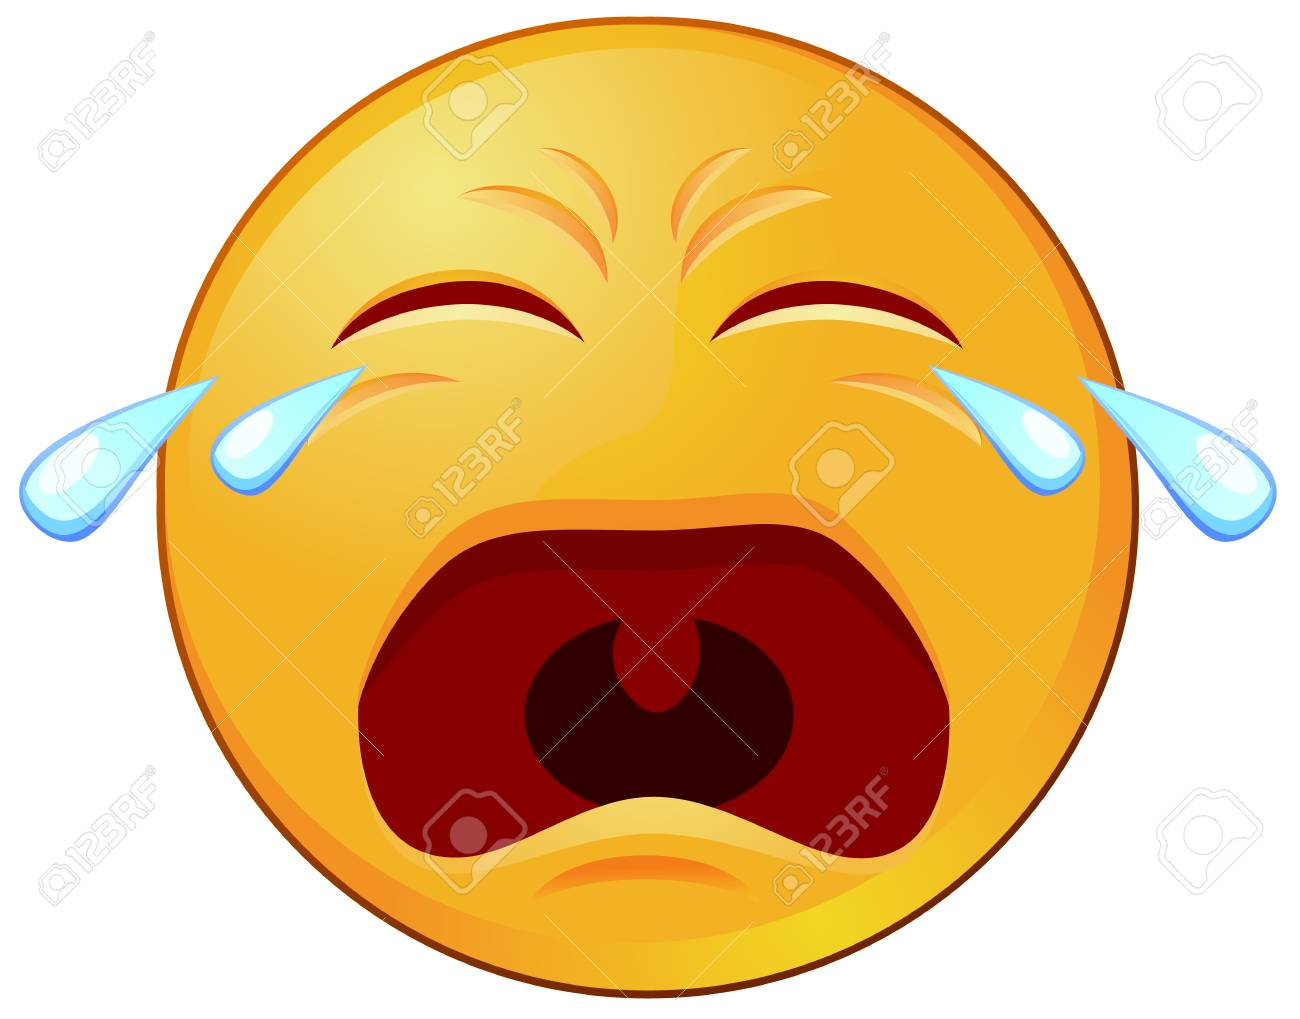 Crying Yellow Emoji With Tears And Mouth Open Vector Stock